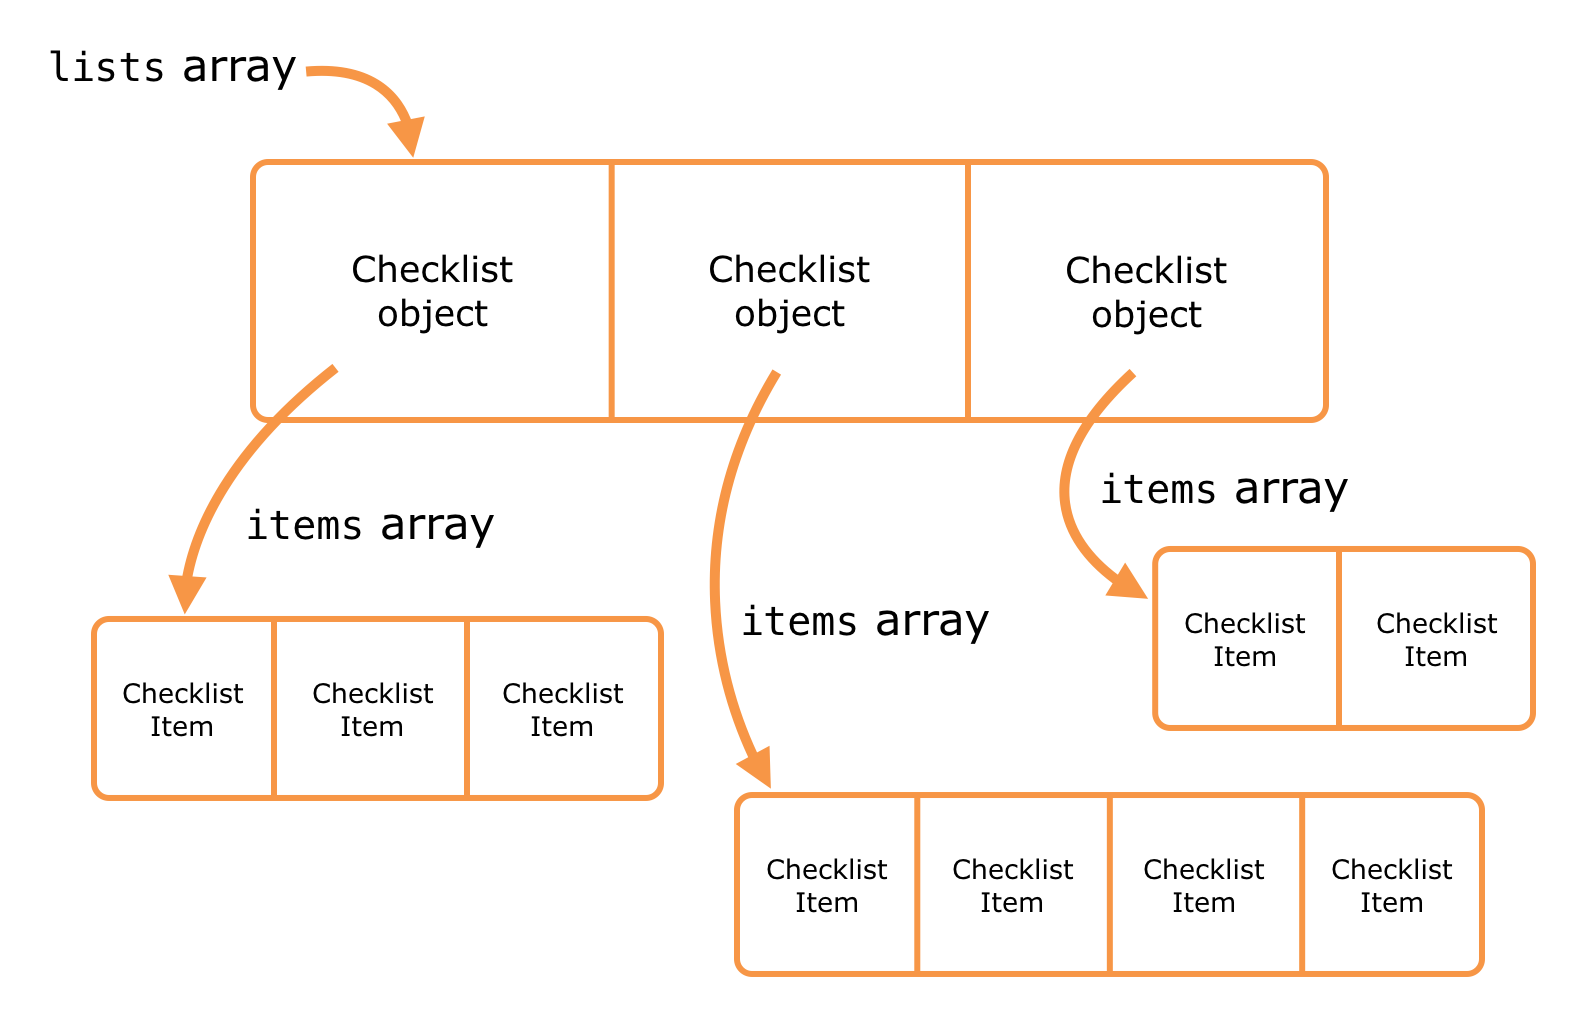 Each Checklist object has an array of ChecklistItem objects